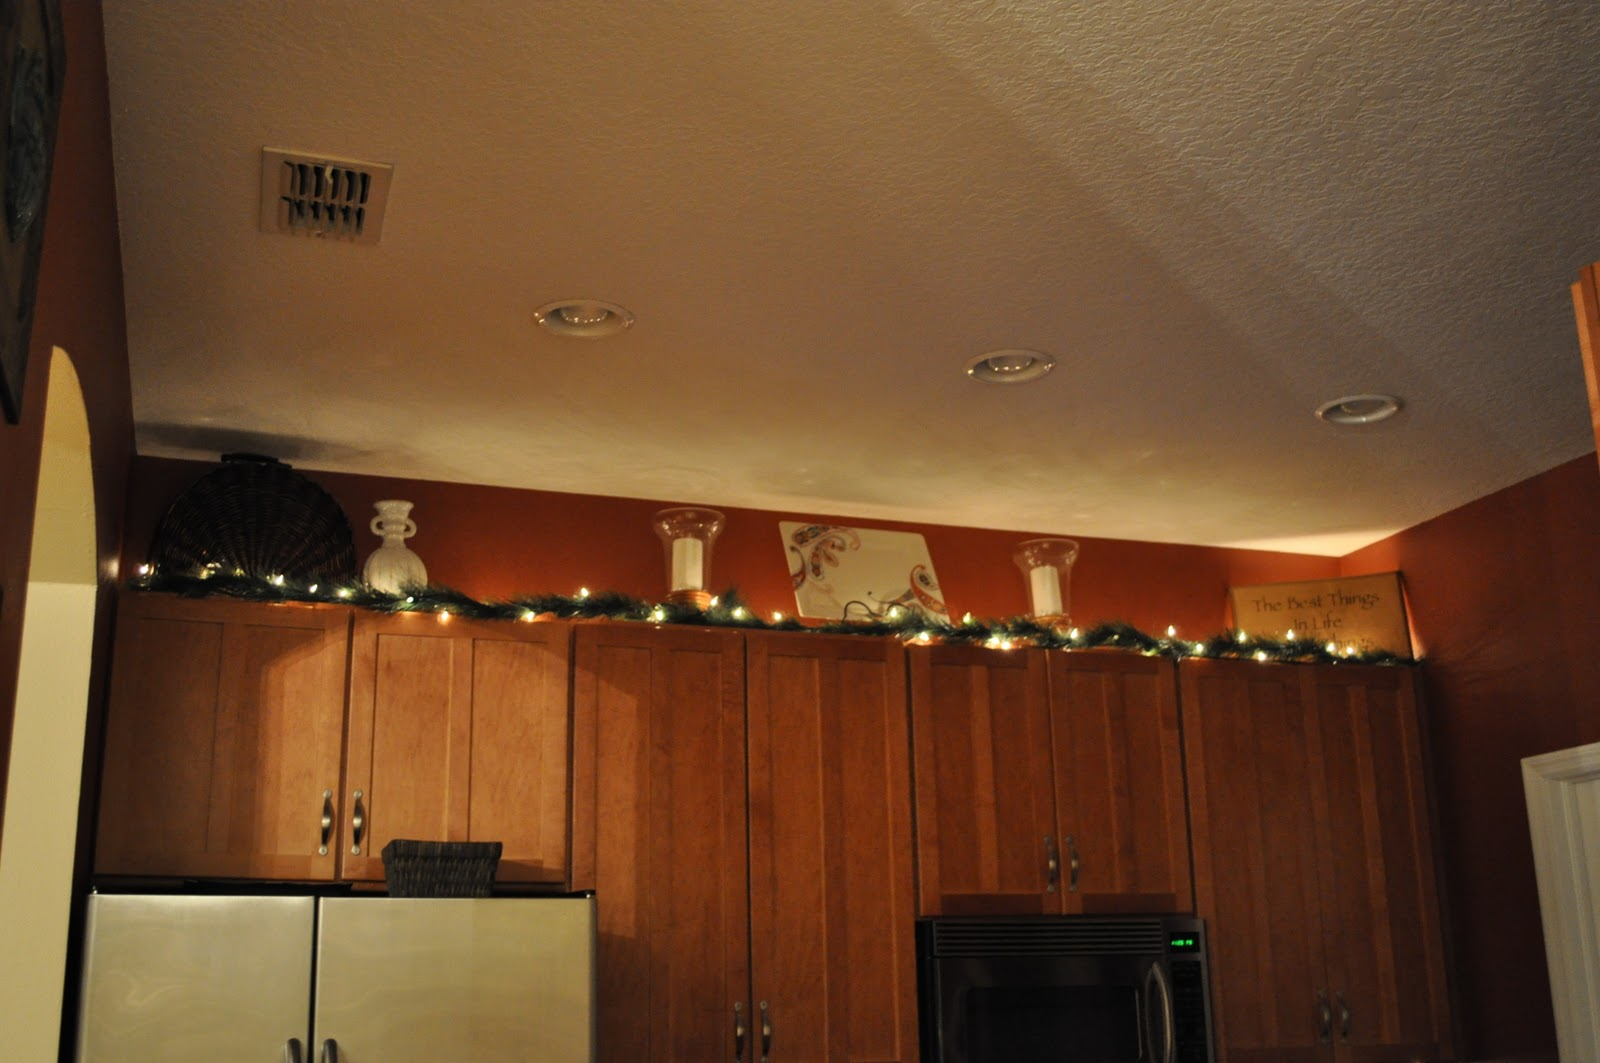 In the kitchen, I just added some lighted garland above the cabinets